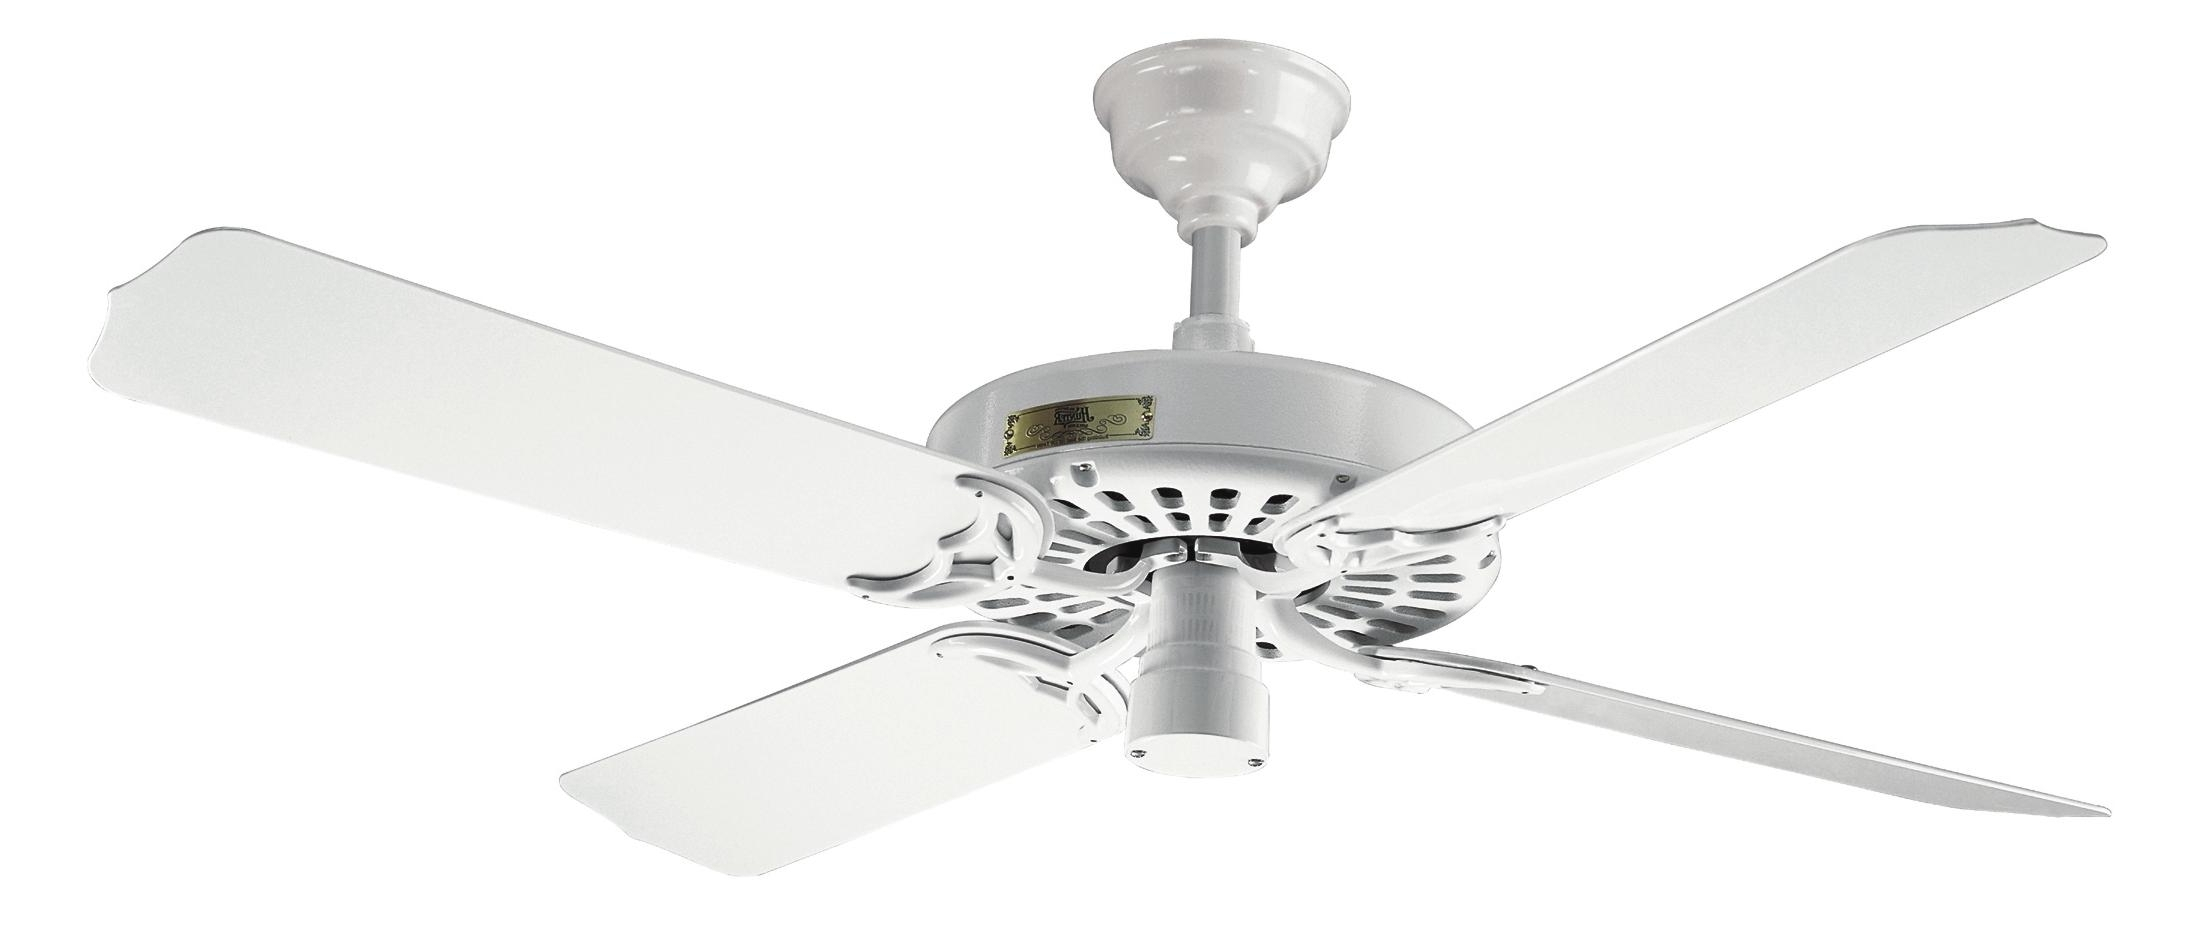 Popular Hunter Outdoor Original White Ceiling Fan 25602 In White, Best Throughout White Outdoor Ceiling Fans (View 11 of 20)